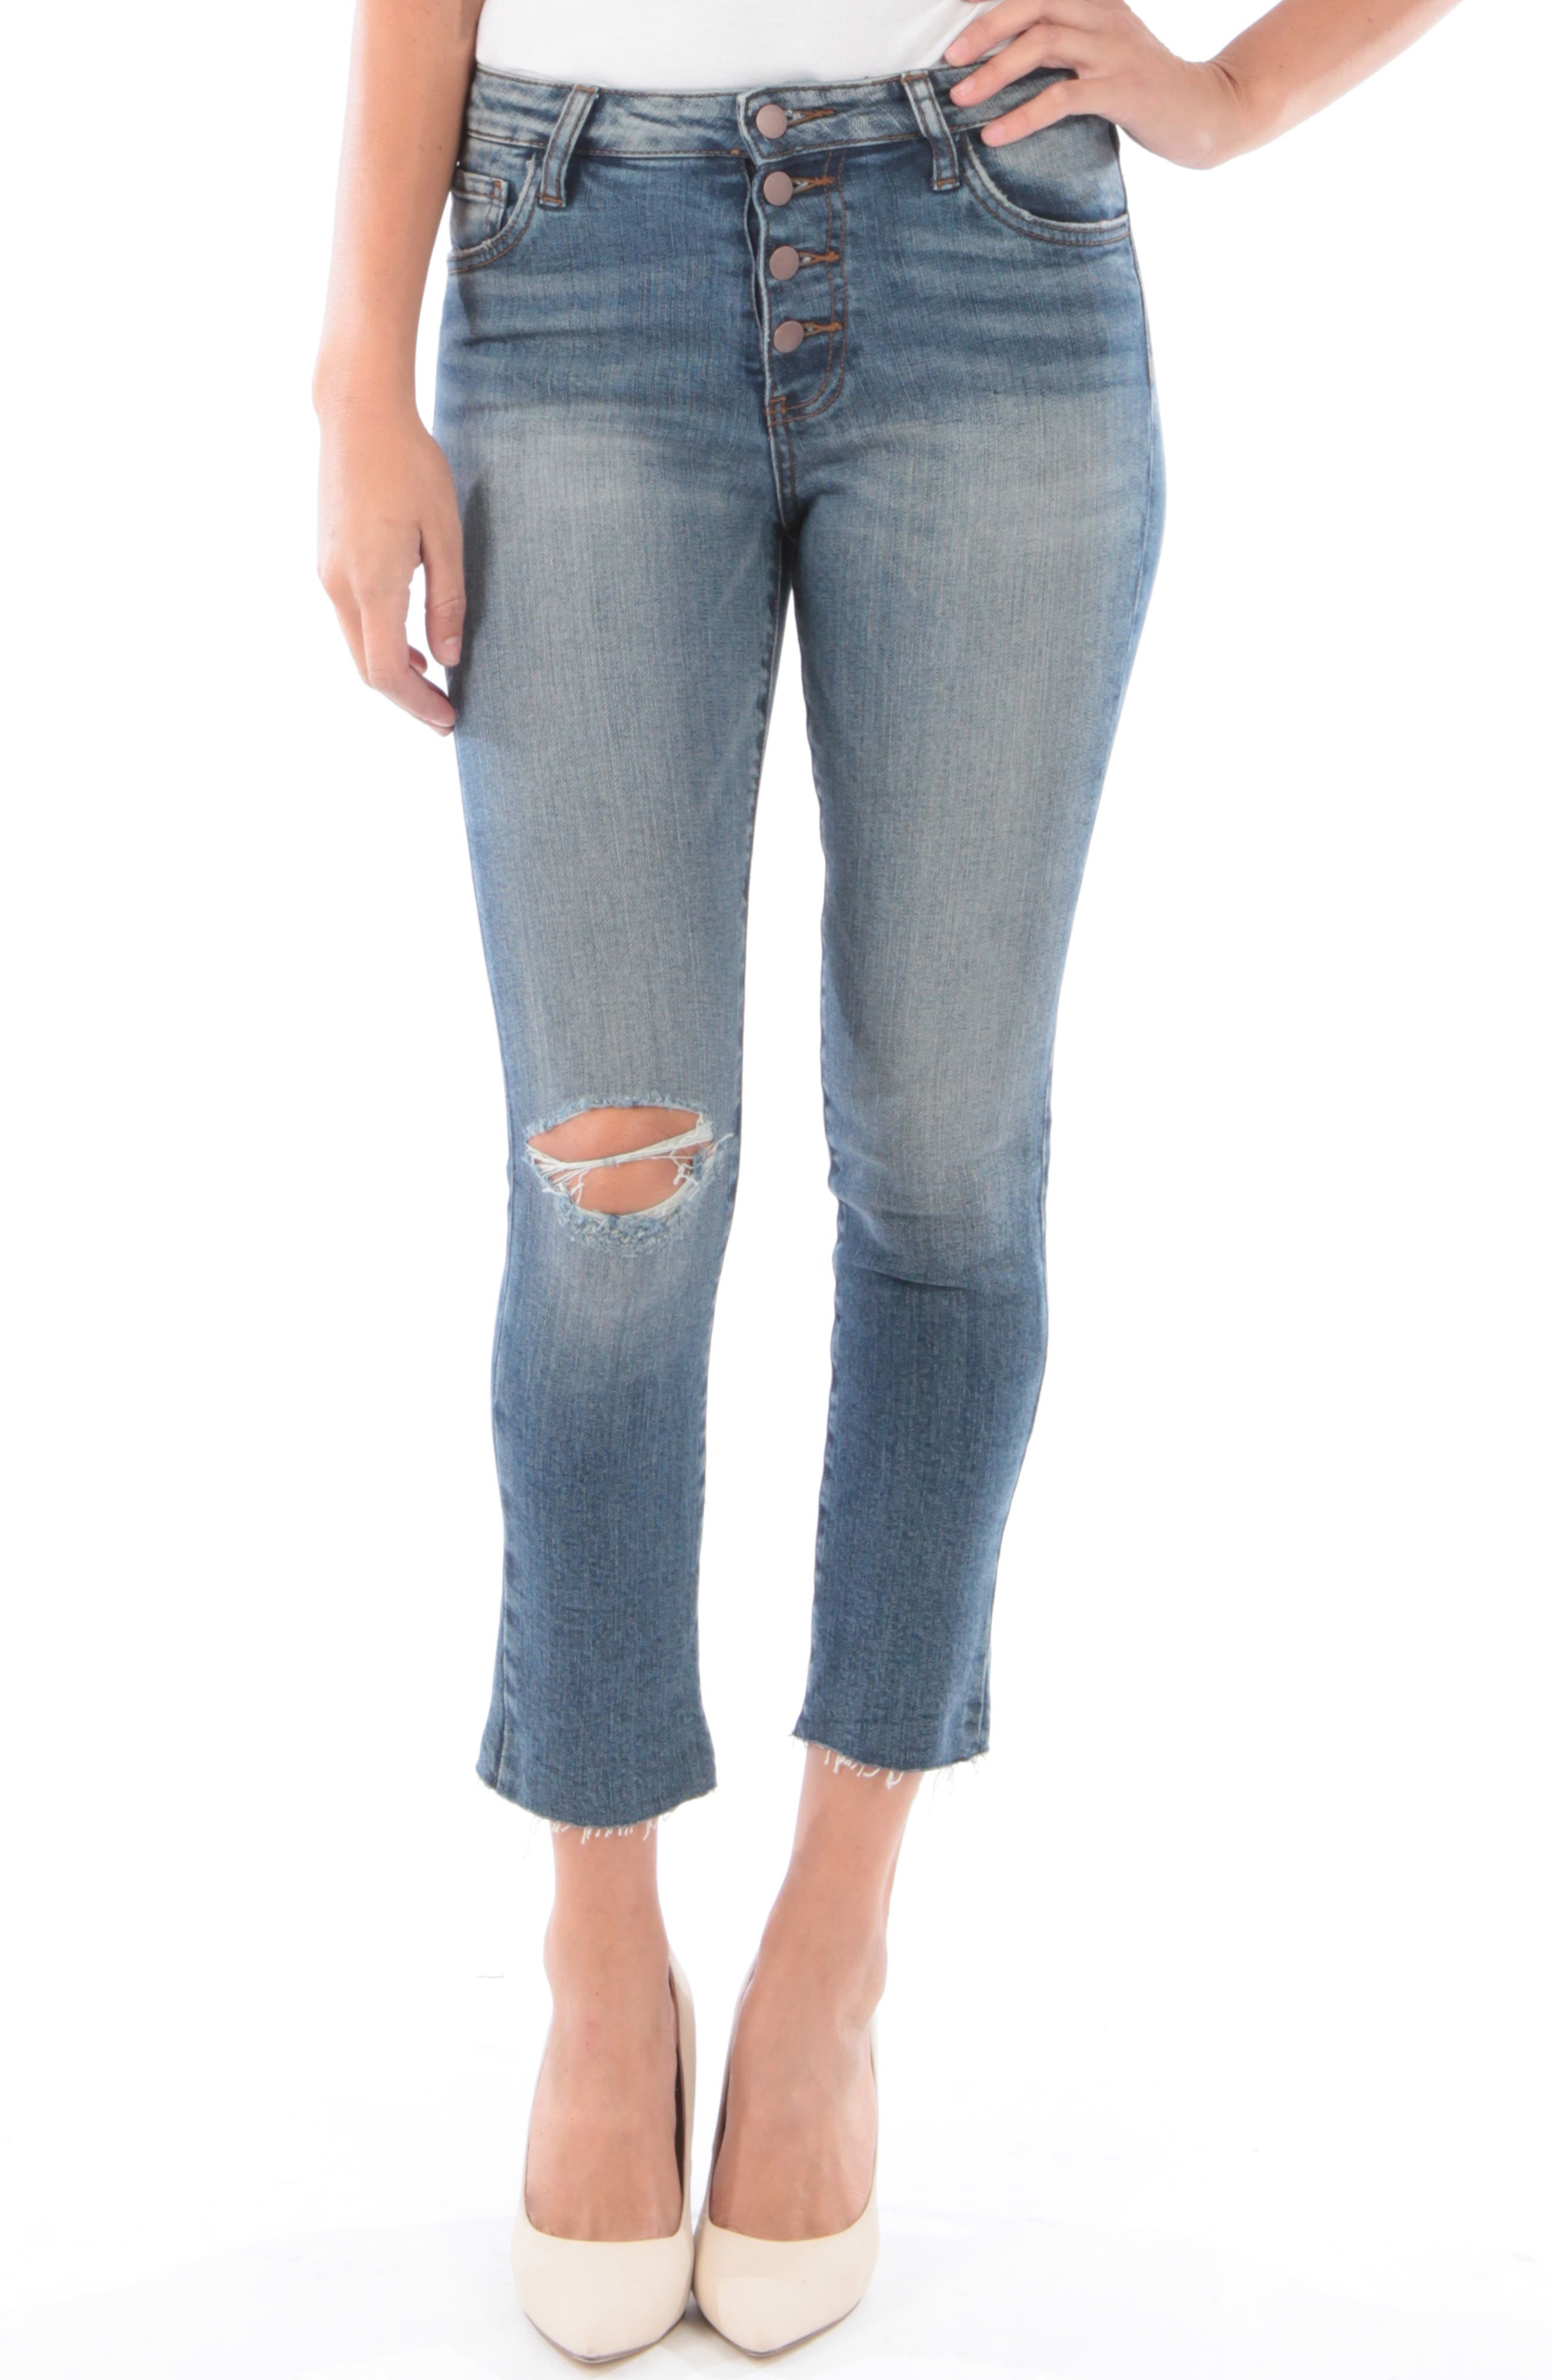 Reese Ripped Ankle Straight Leg Jeans,                             Main thumbnail 1, color,                             402